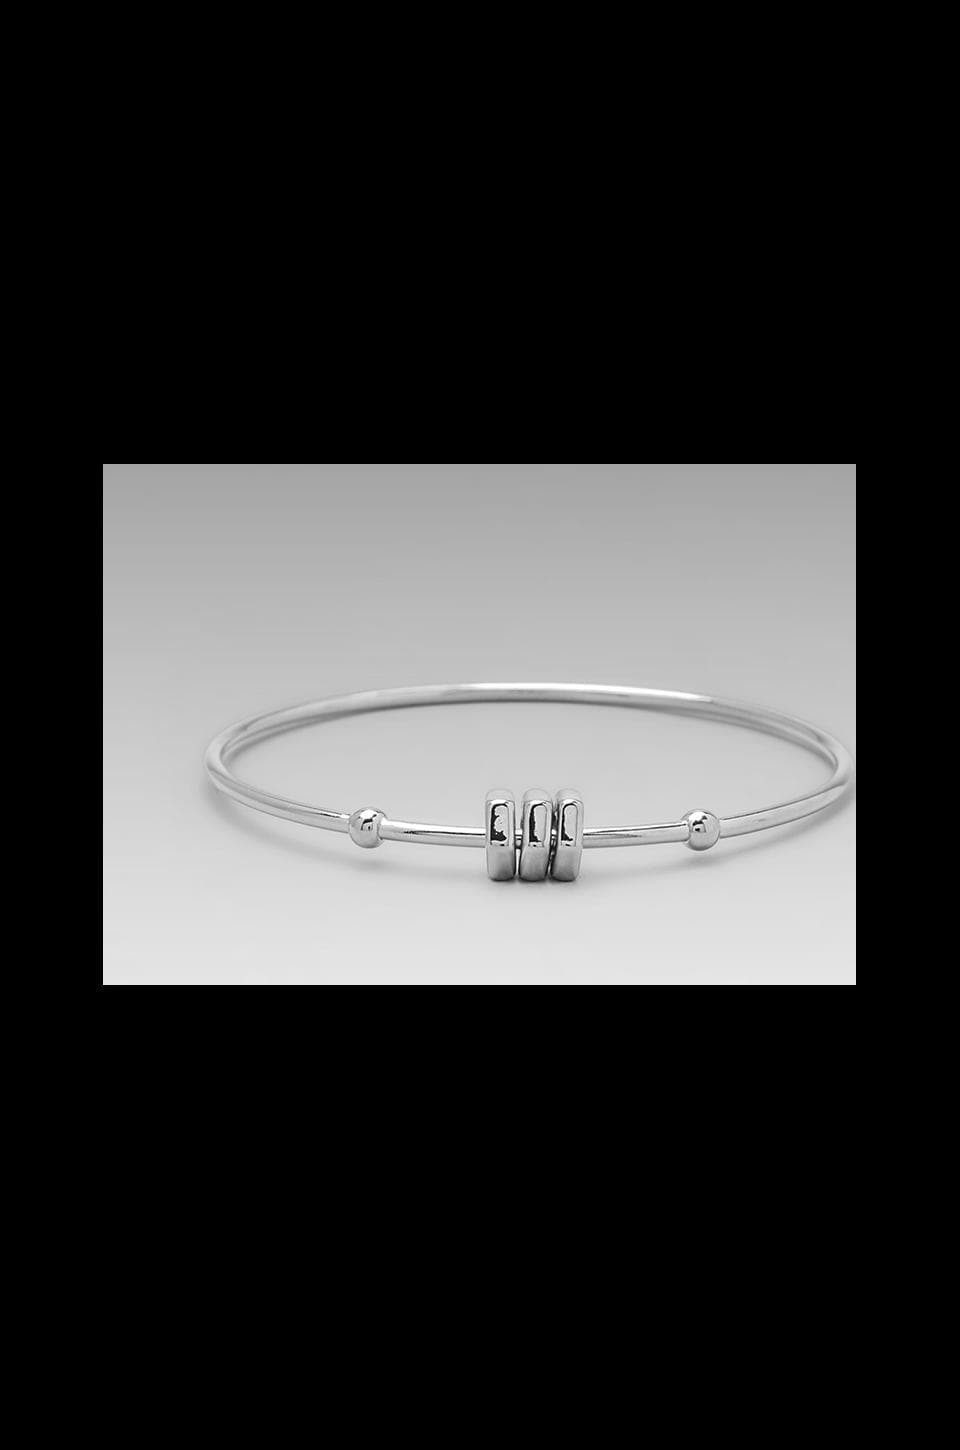 Marc by Marc Jacobs Bolt Tiny Bangle in Argento